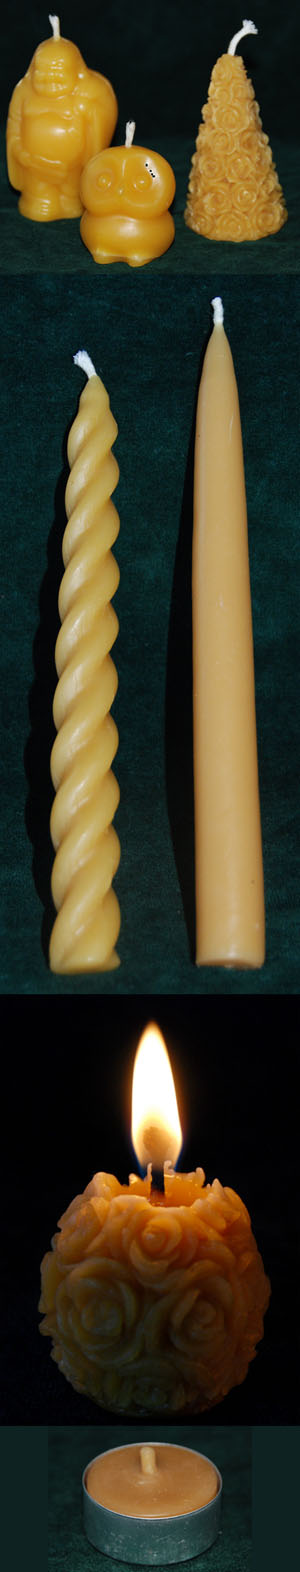 Pure Handcrafted Beeswax Candles in many shapes and sizes.